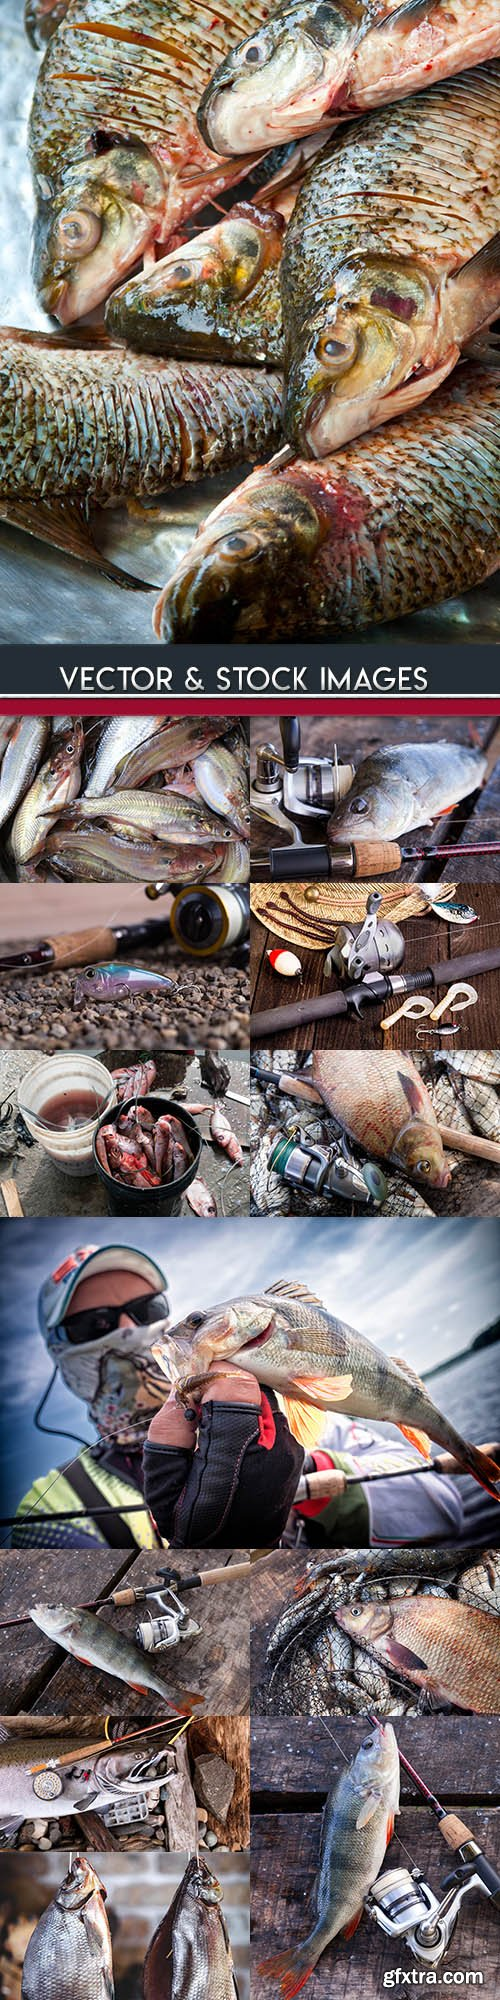 Fishing on wild nature and tackle for fishing